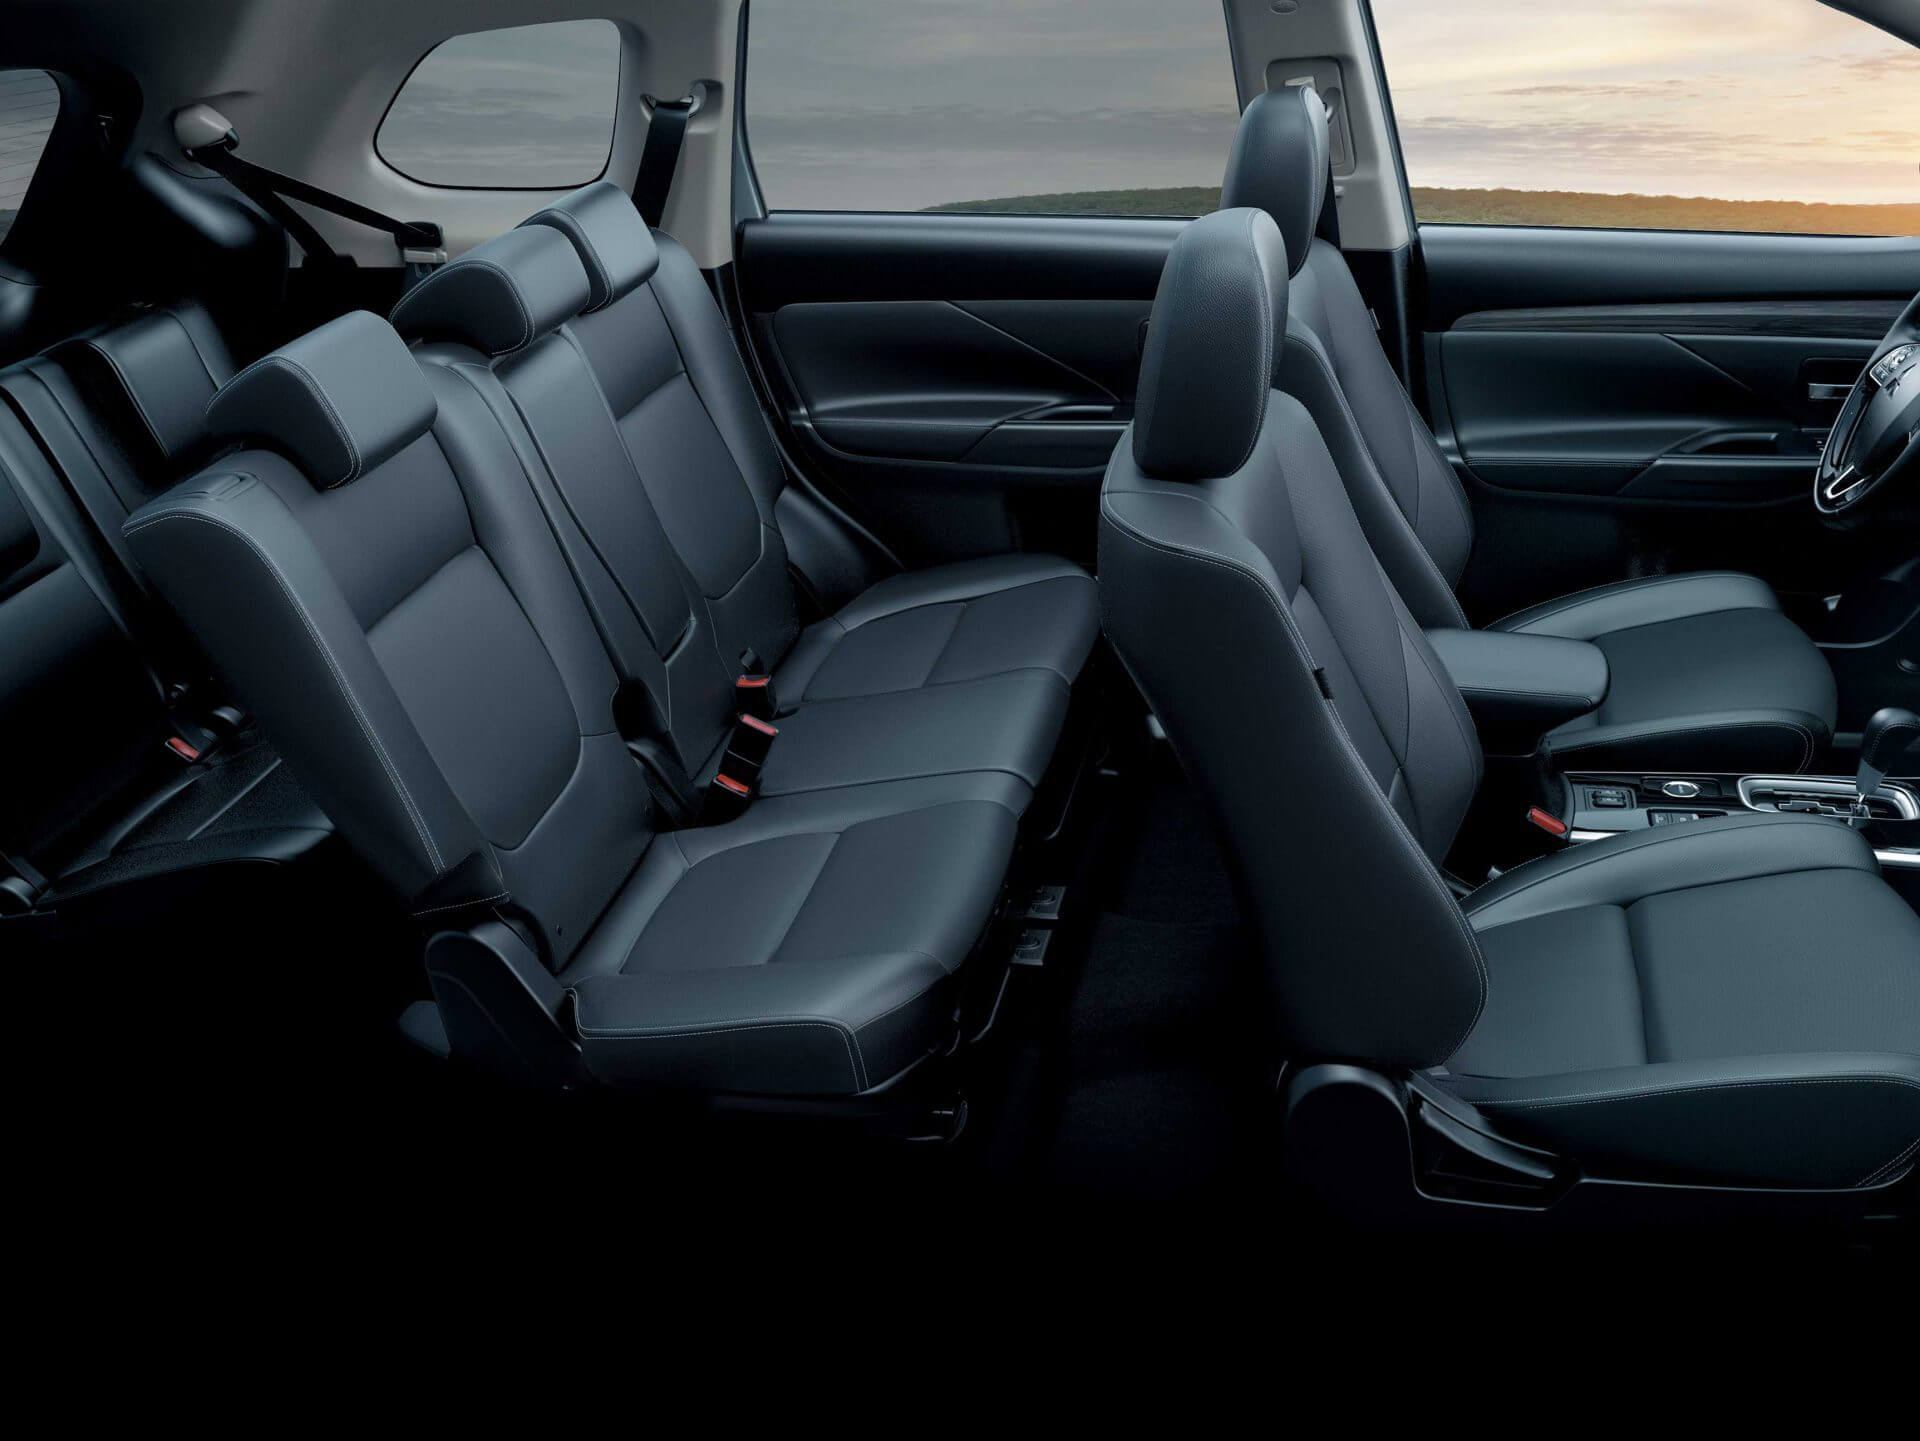 Spacious interior with 5+2 seats